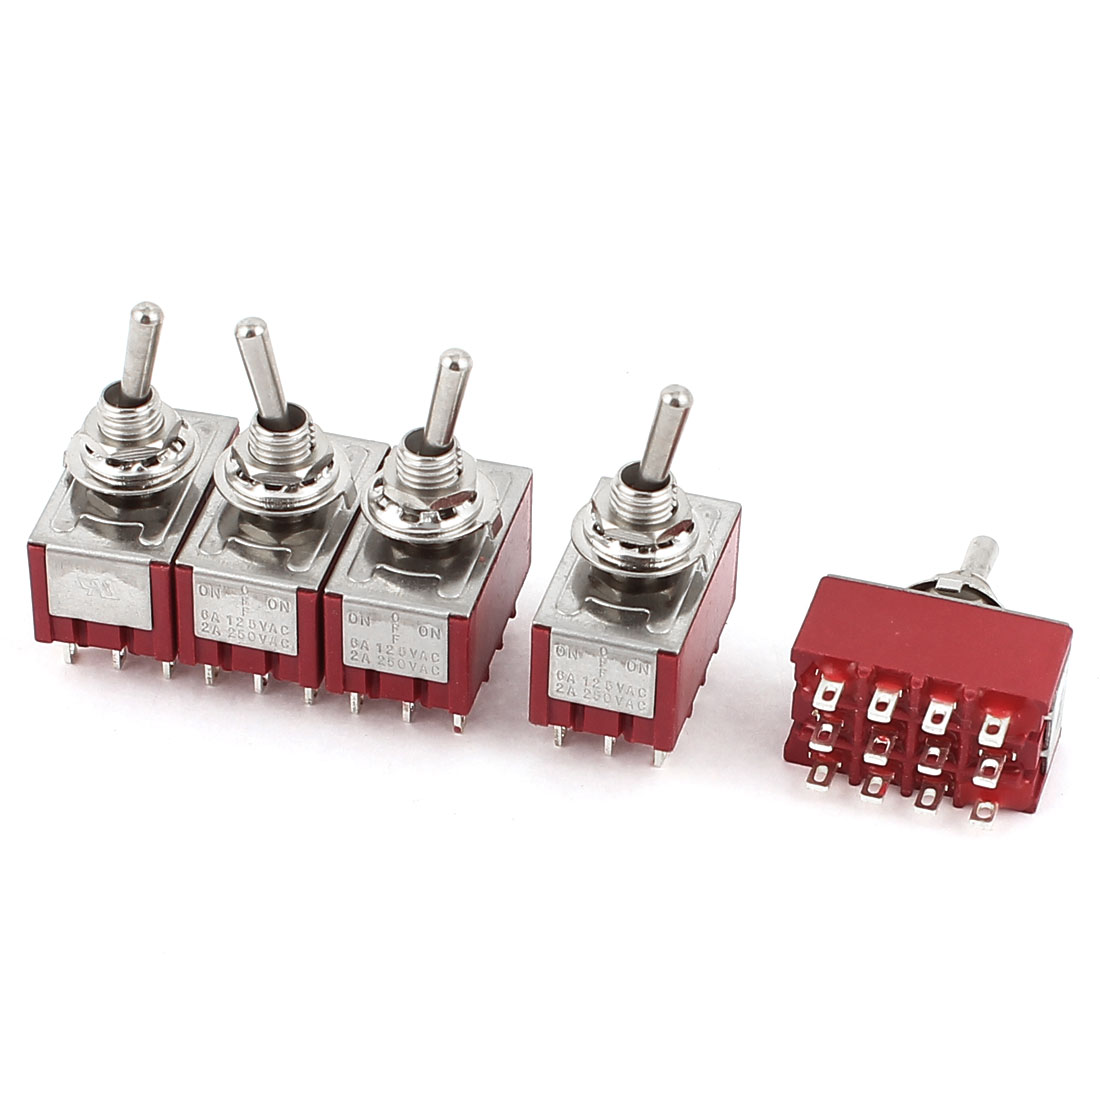 5pcs 4PDT ON-OFF-ON 3 Position 12 Terminal Toggle Switches AC 250V/2A 125V/6A